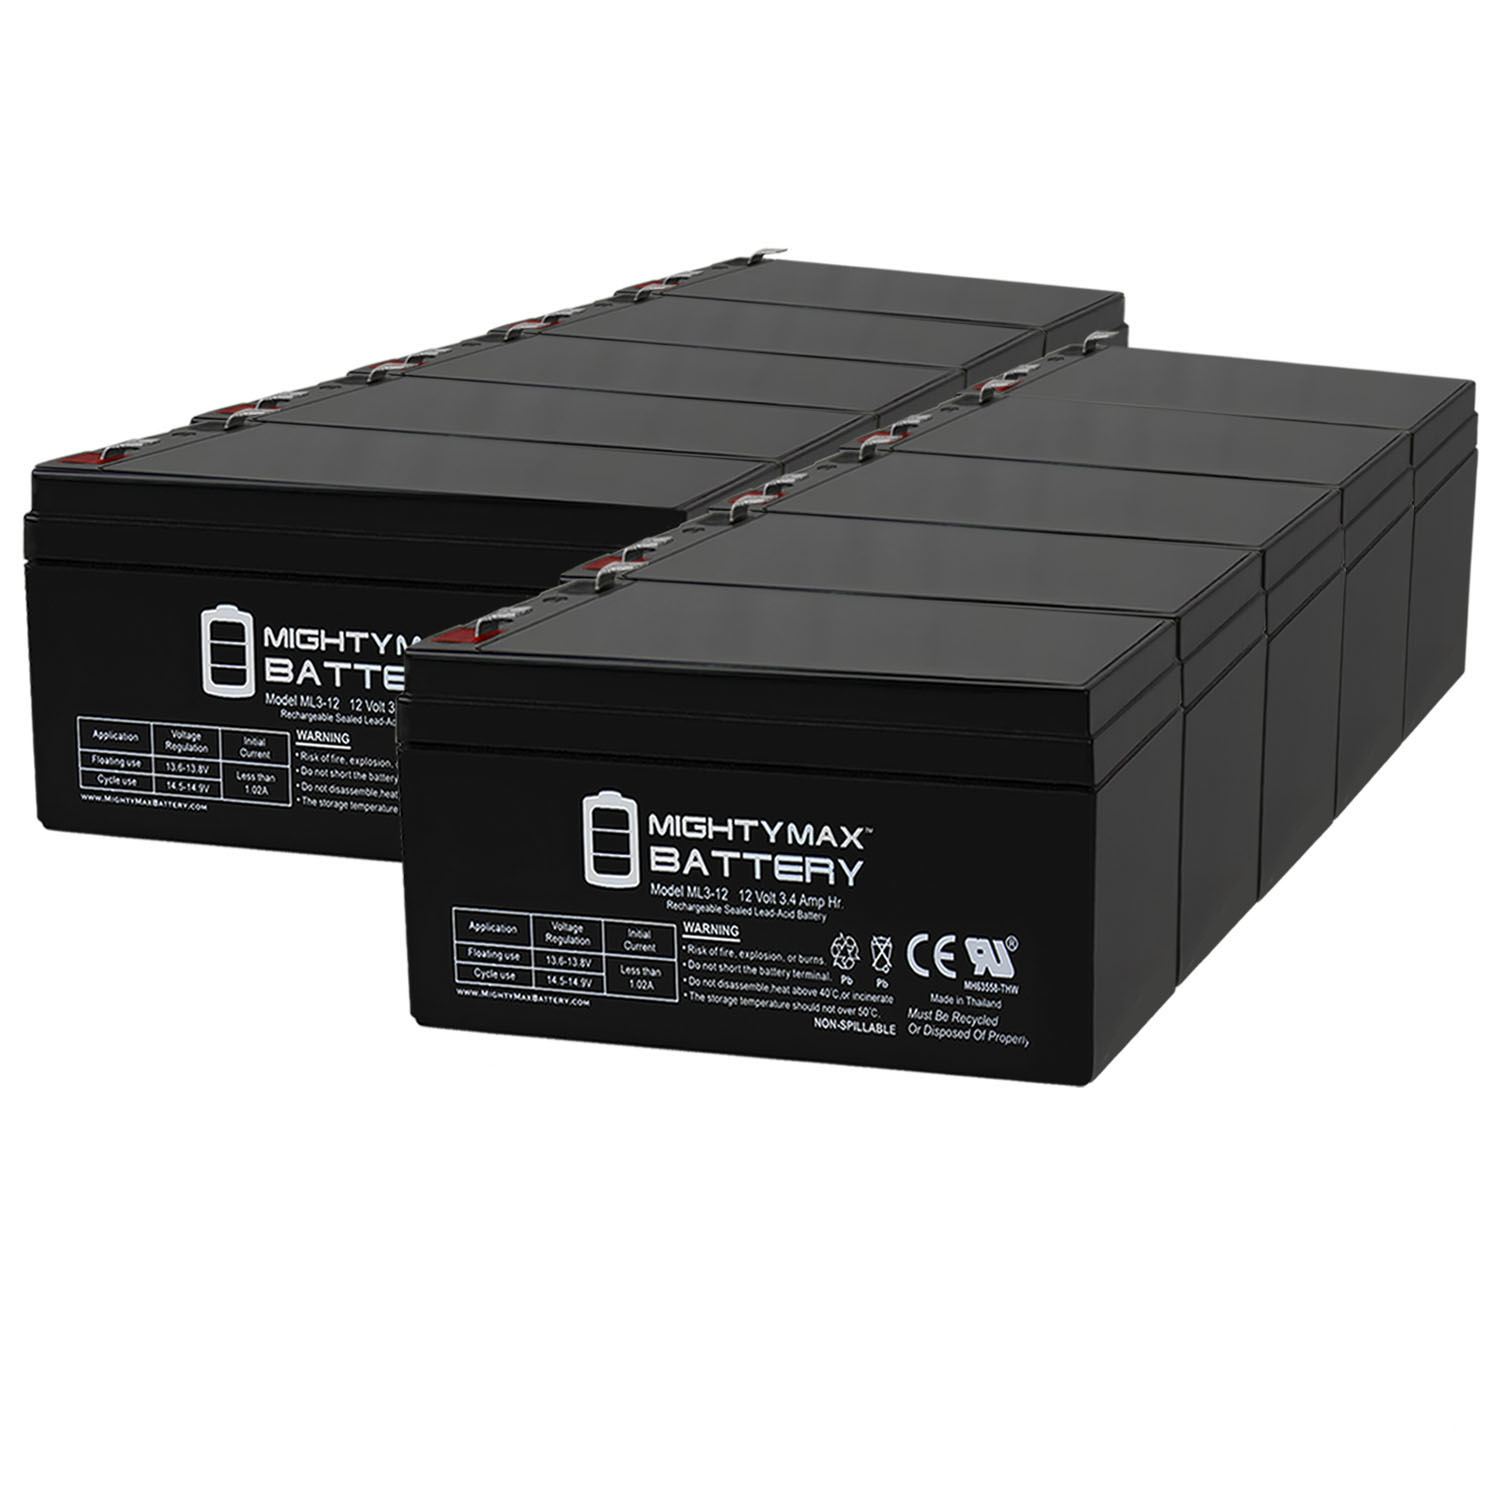 Mighty Max Battery ML3-12 Replacement For Toro Lawn mower # 106-8397 BATTERY-12V 3.4Ah - 10 Pack at Sears.com